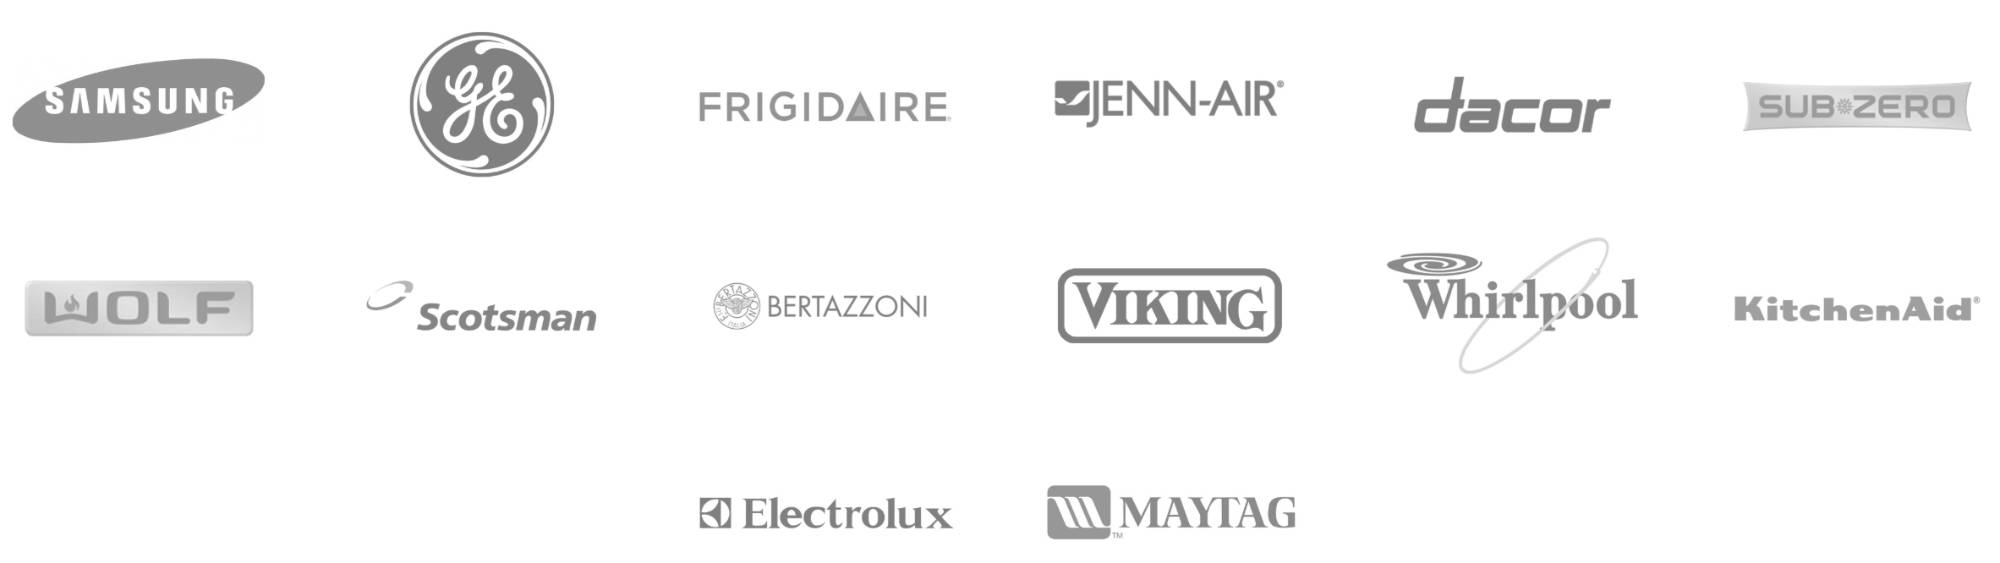 appliance-brands